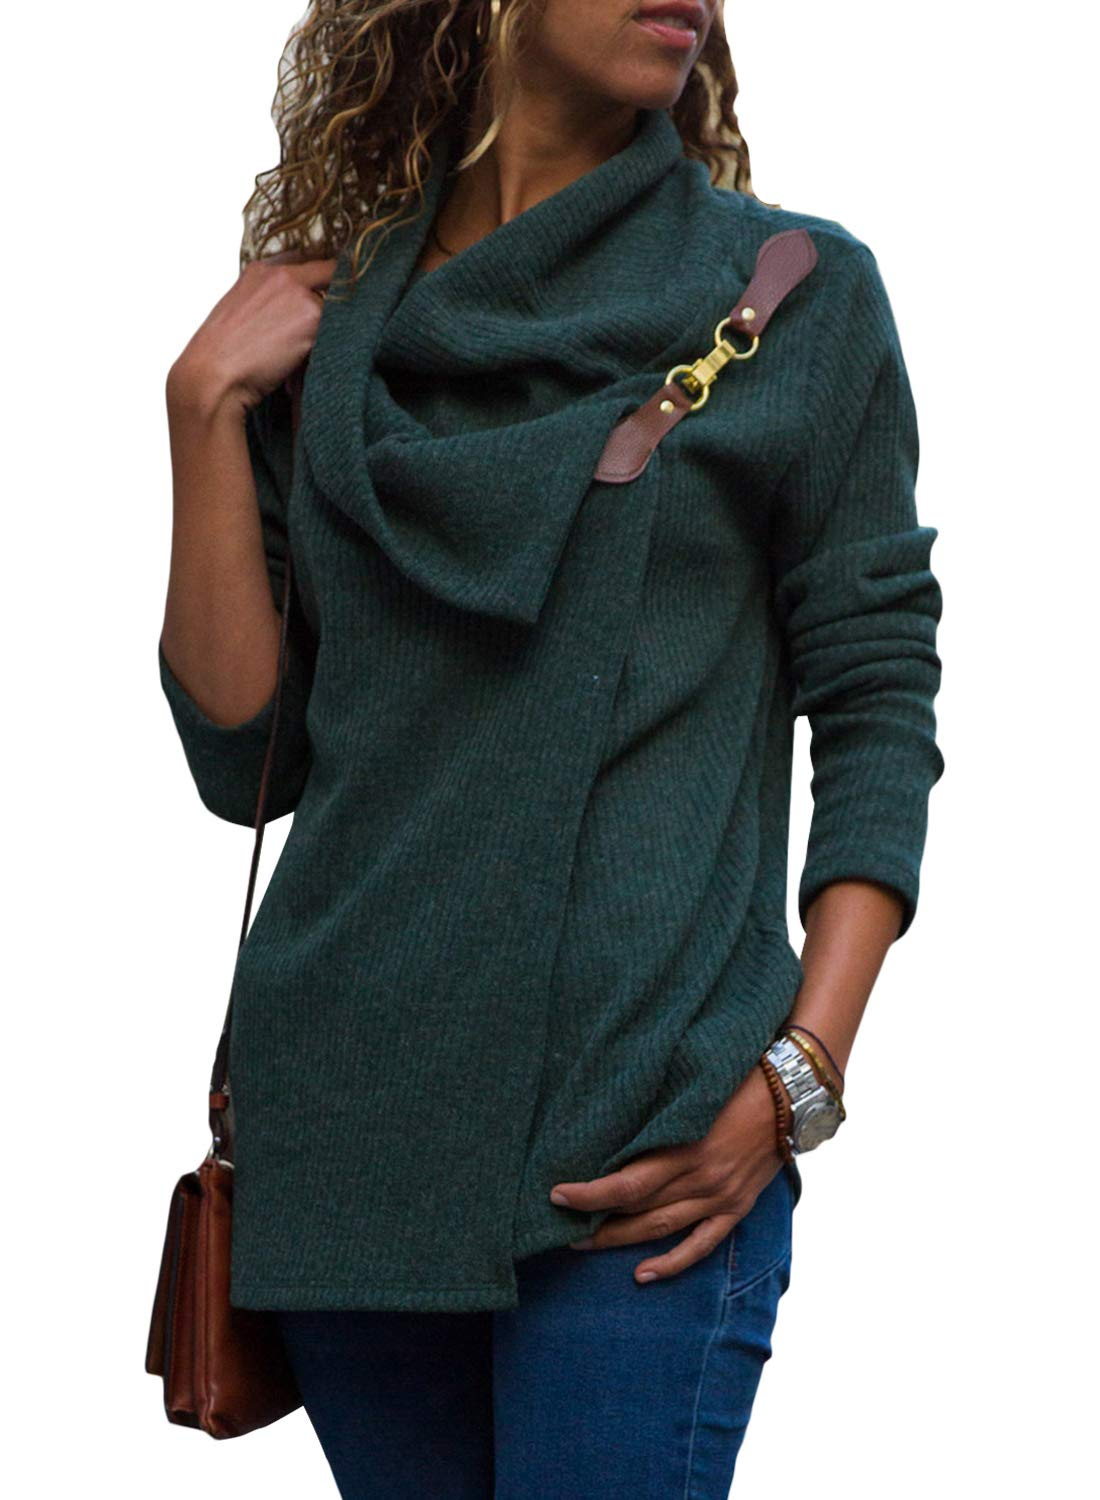 LOSRLY Women Cowl Neck Wrap Front Cabel Kintted Pullover Sweater Coat Long Sleeve Sweatshirts Outwear YL251319